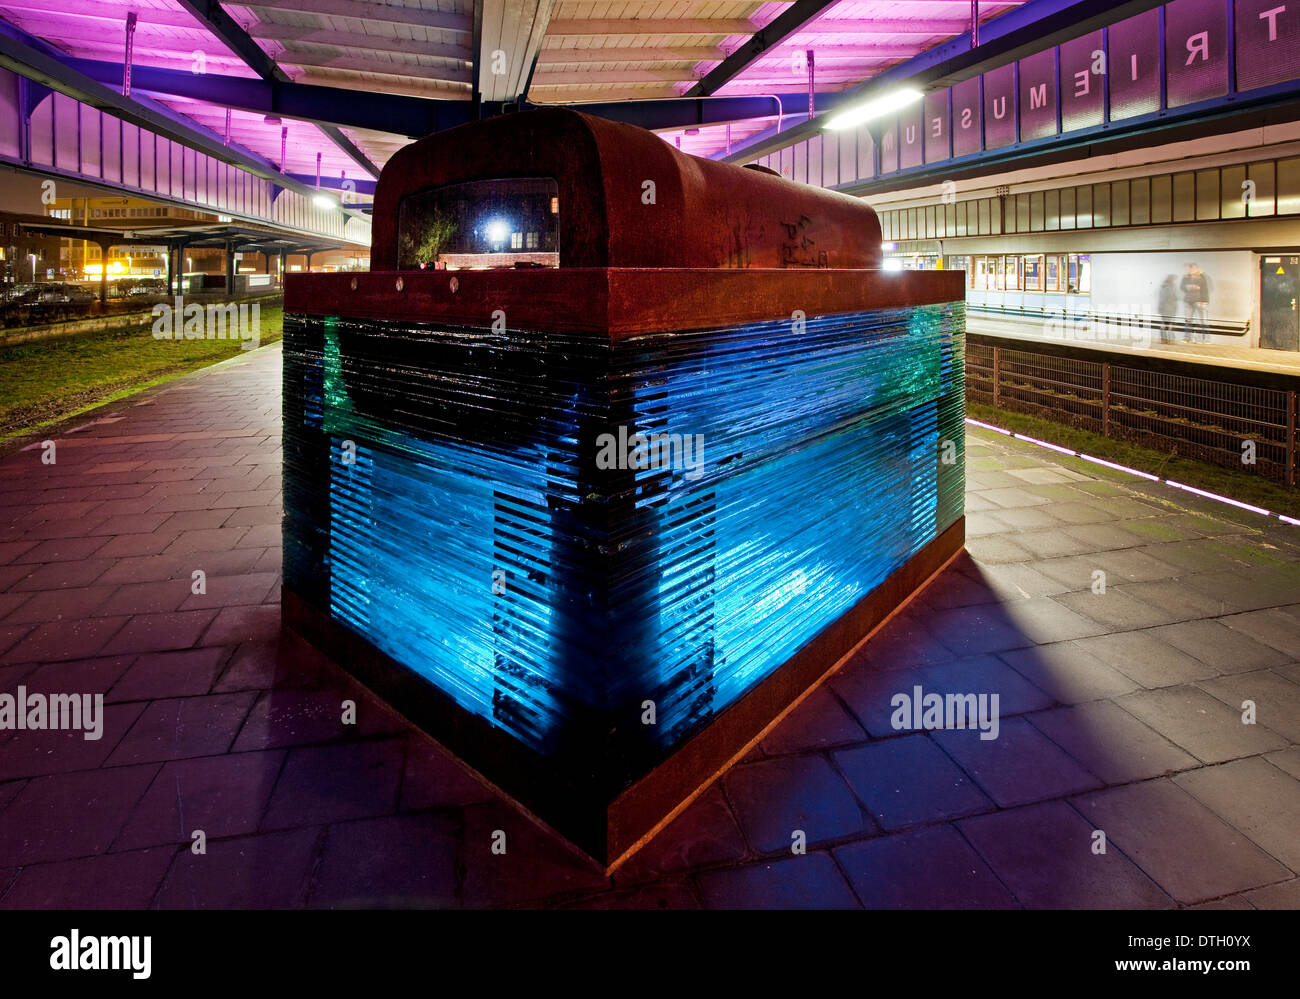 Iron and glass sculpture at the museum platform with the disused tracks 4 and 5 of Oberhausen central railway station - Stock Image